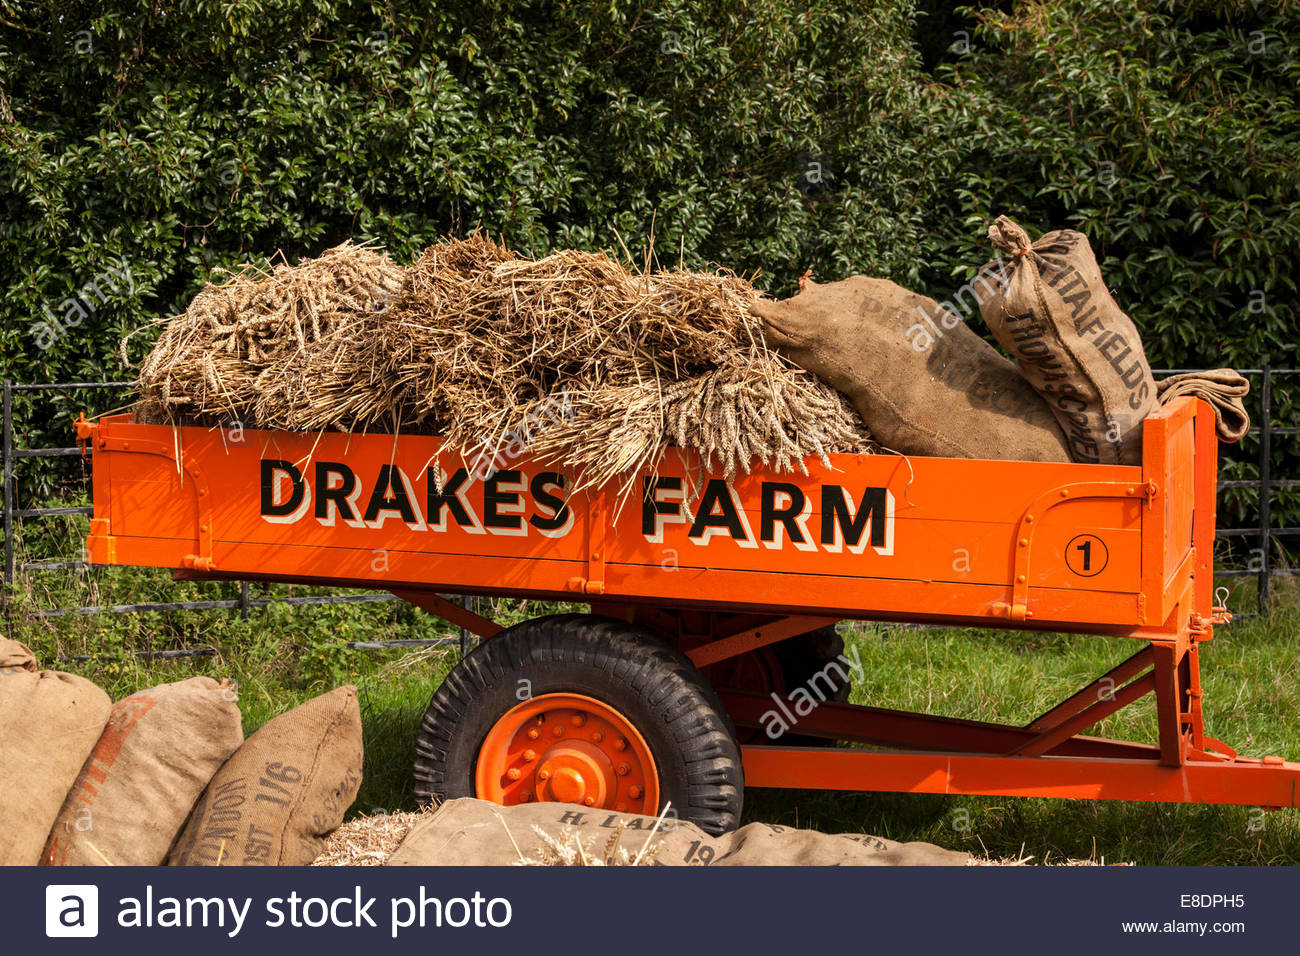 Farm trailer carrying sacks and wheat - Stock Image